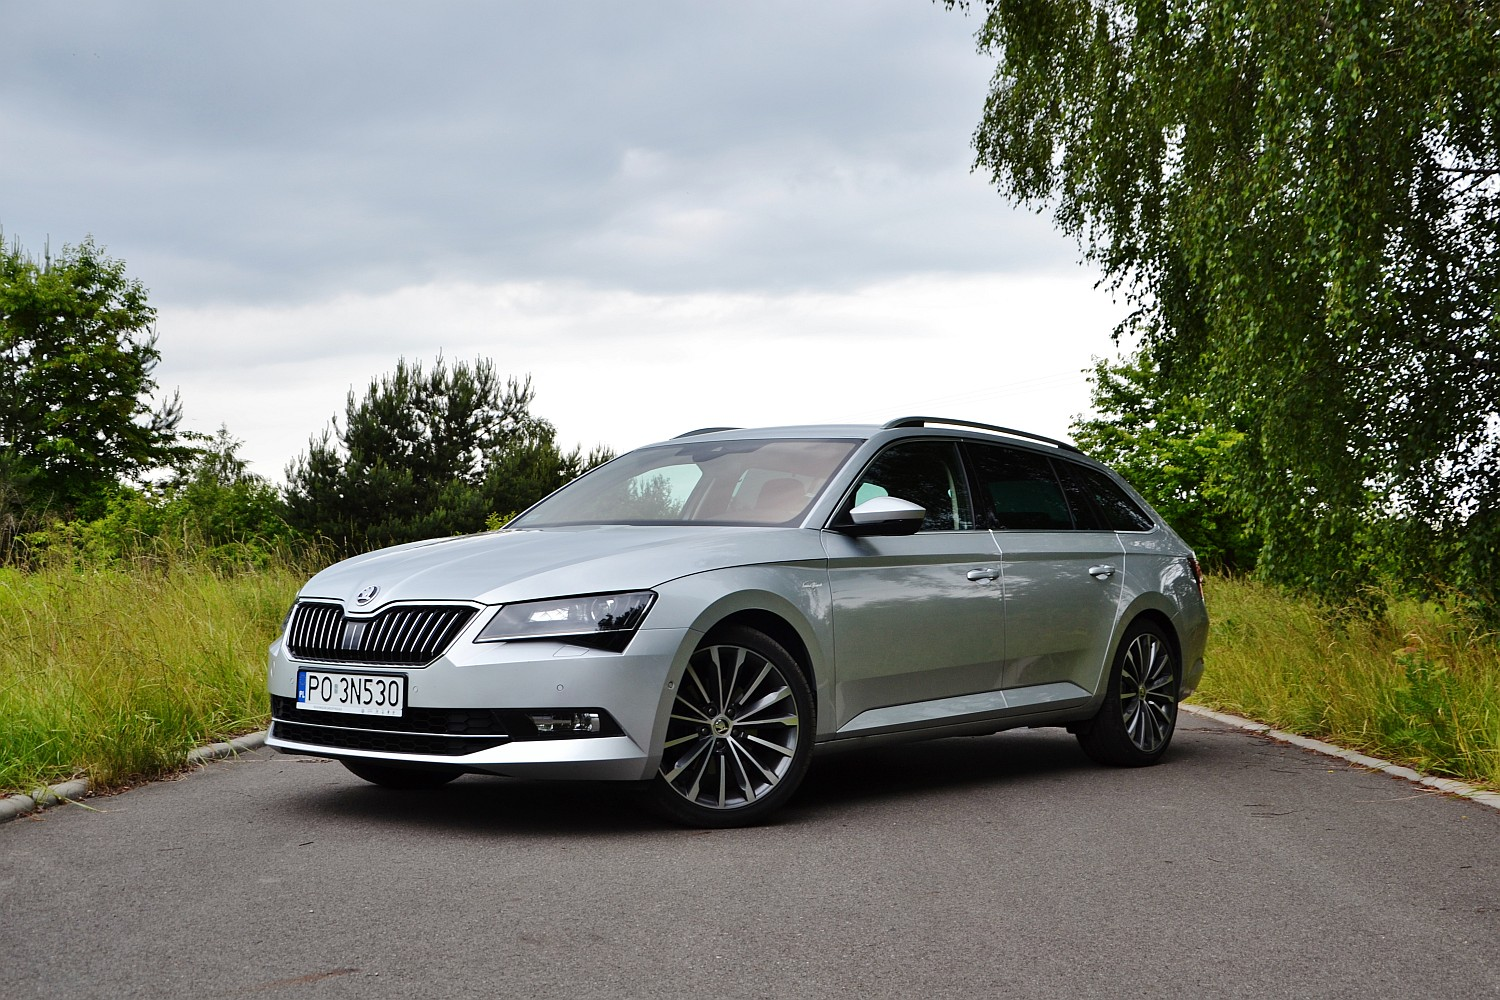 2018 Skoda Superb Combi 4x4 Car Photos Catalog 2018